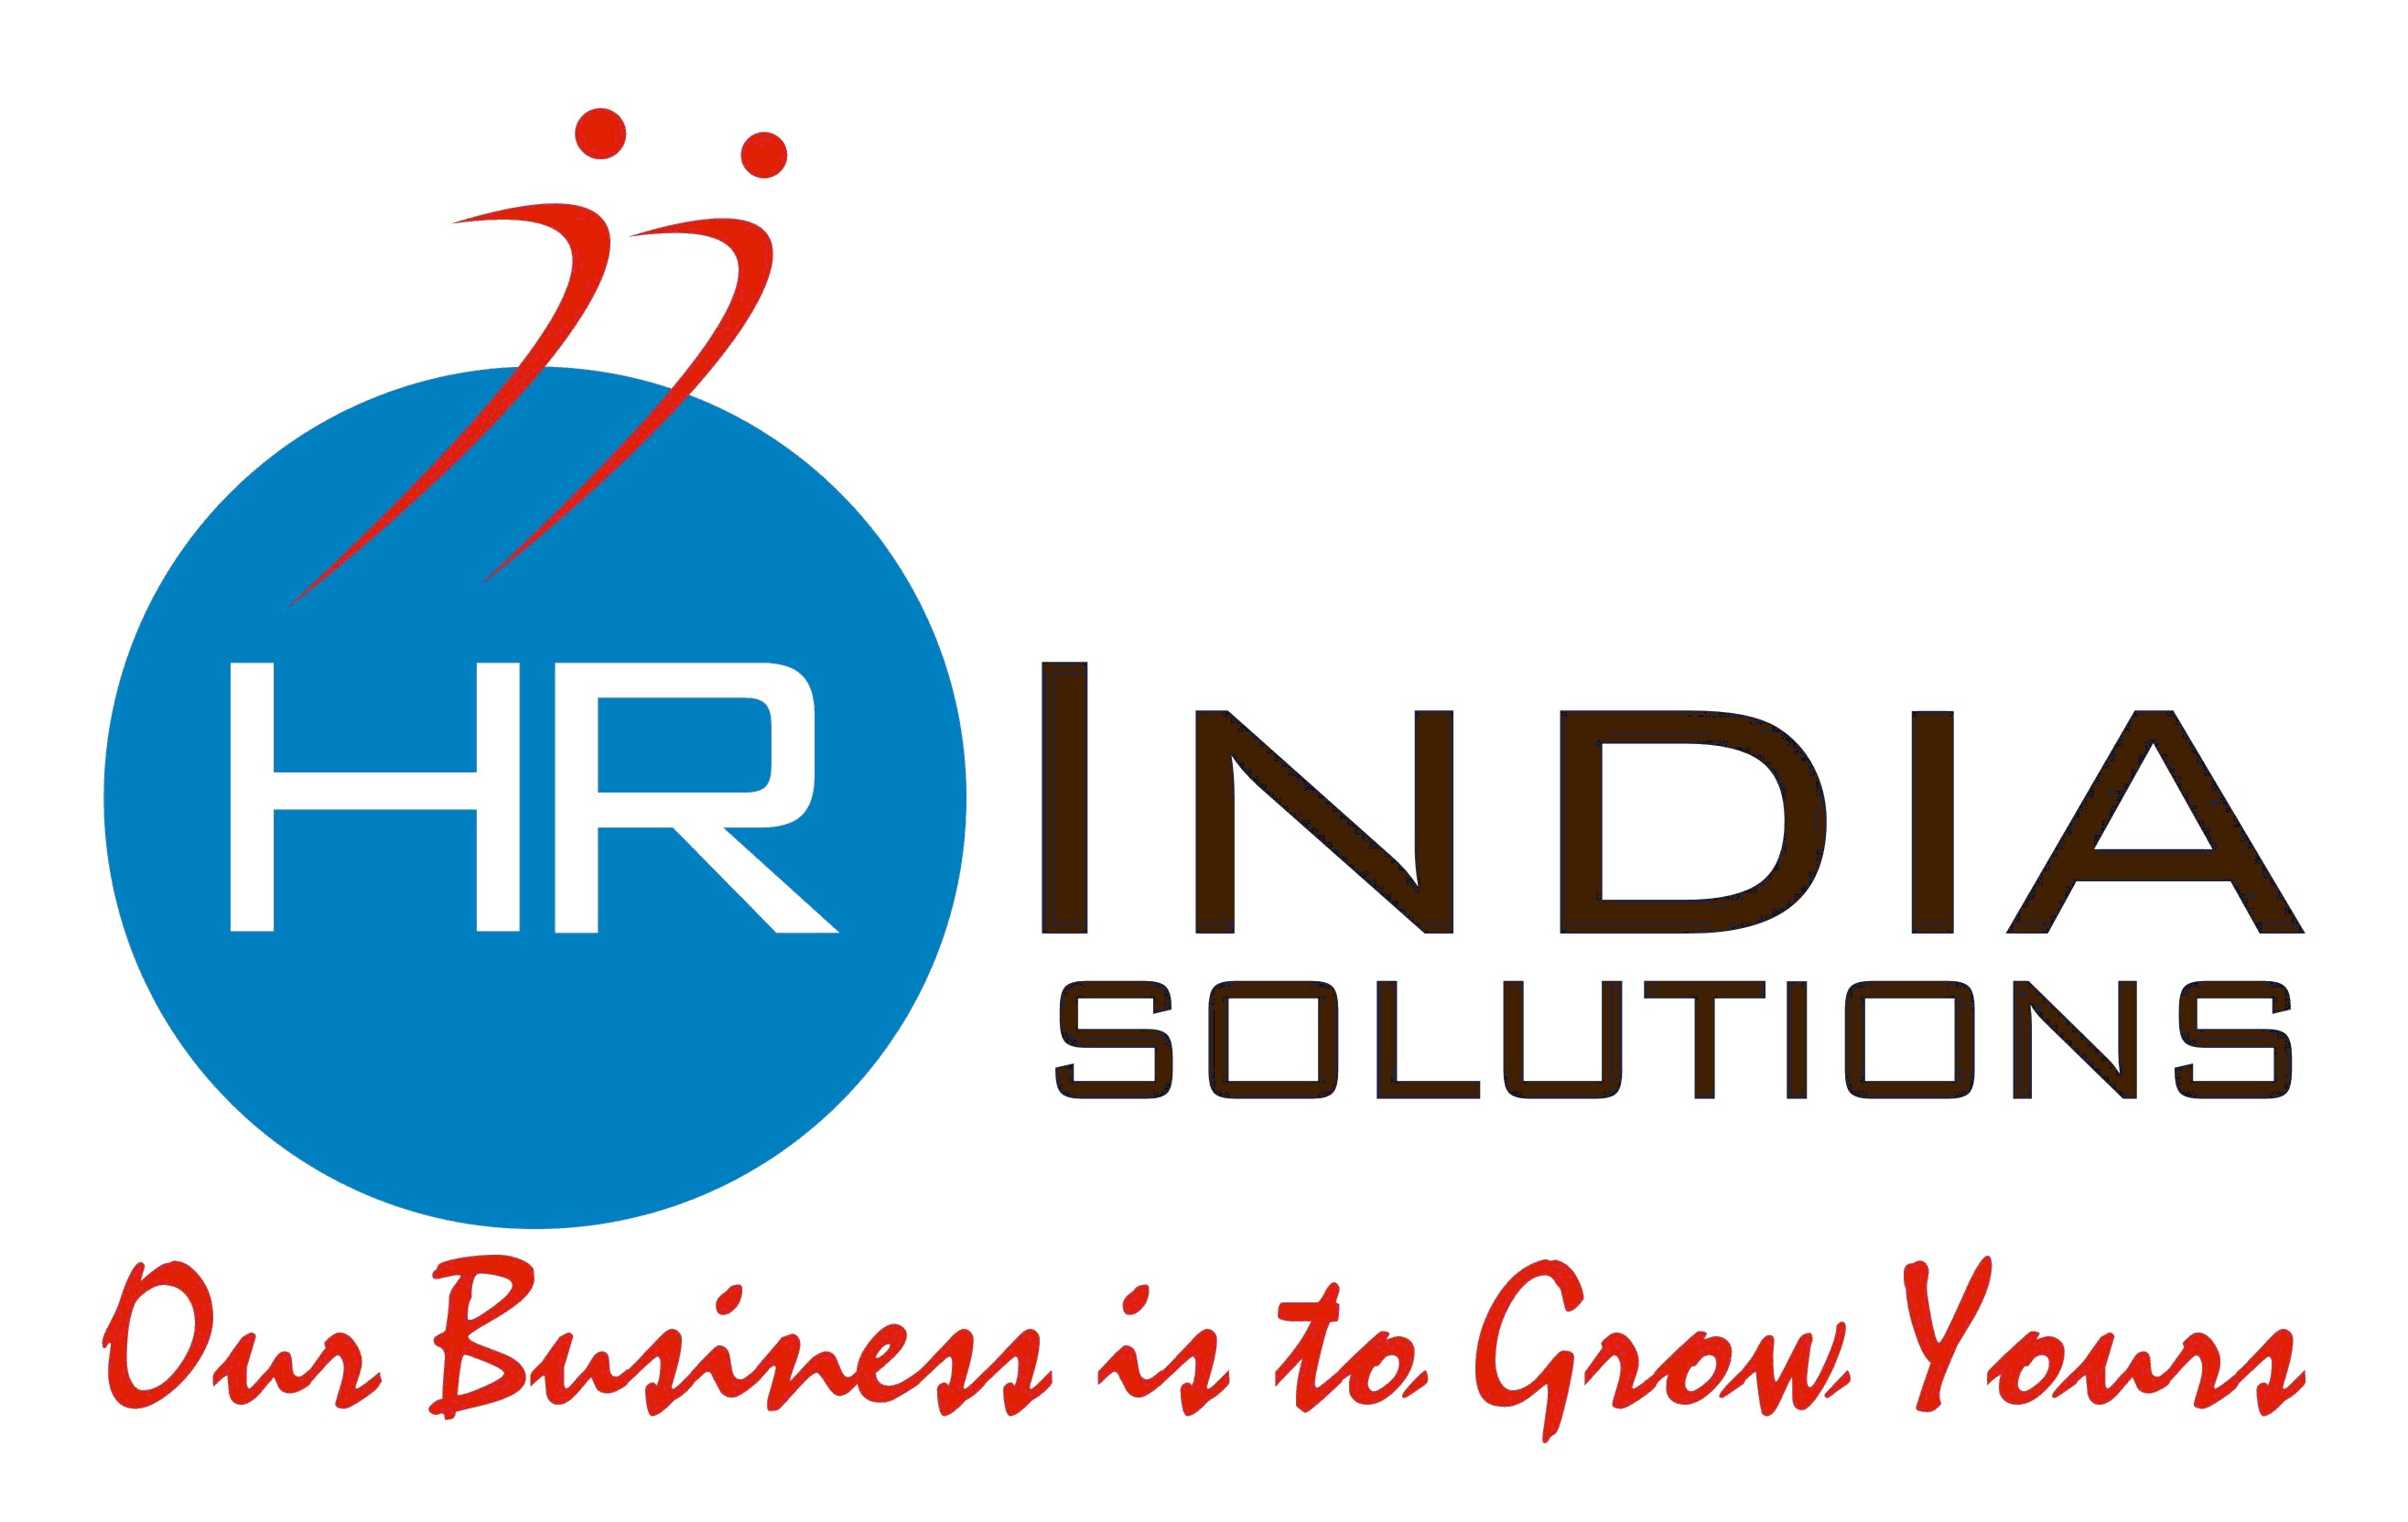 HR INDIA SOLUTIONS